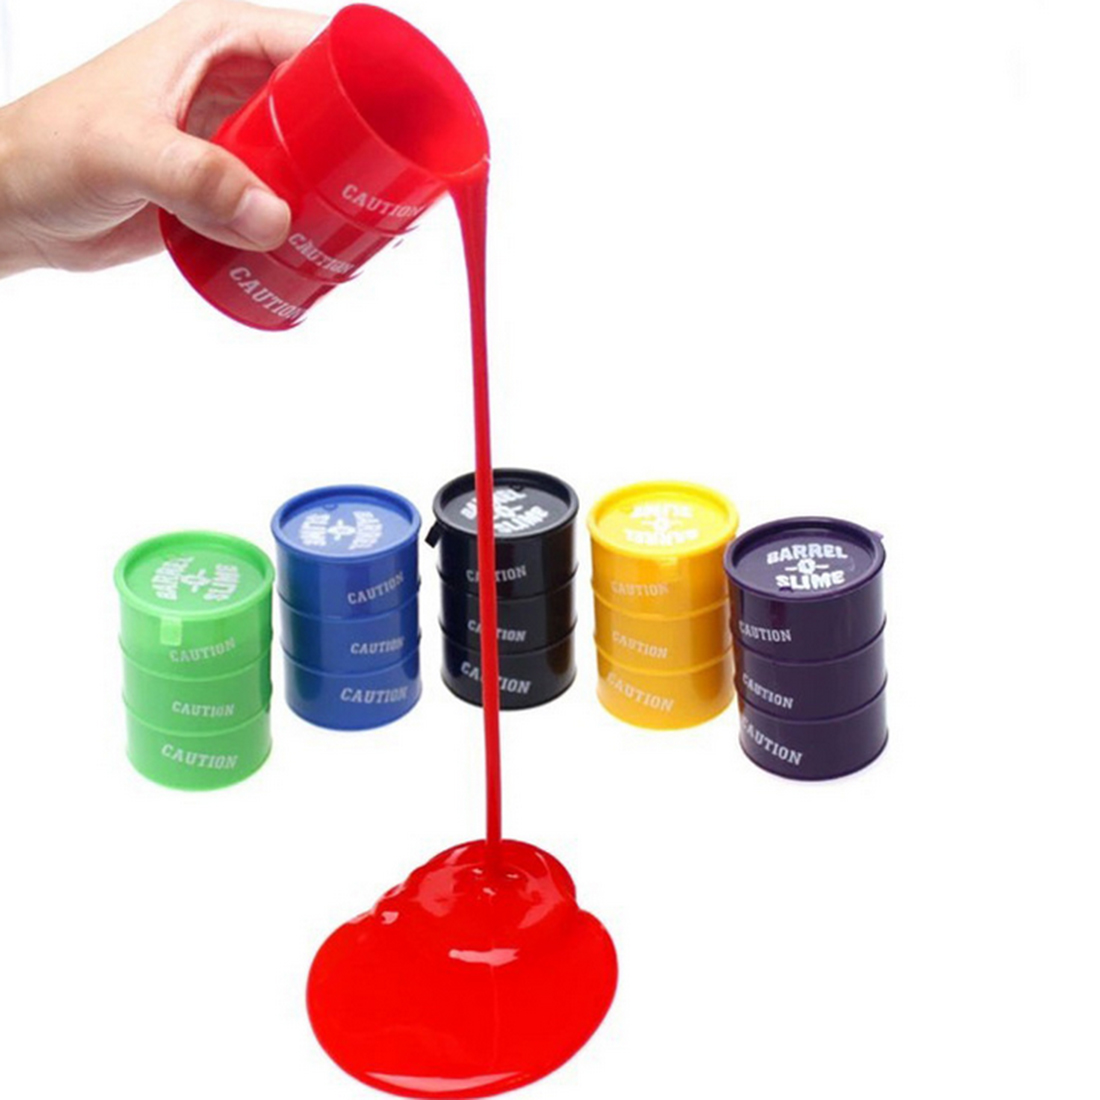 Surwish 5Pcs Set Funny Toy Crazy Trick Party Supply Prank Trick Toy Silicone Paint Bucket 7.6*5.5cm - Color Random